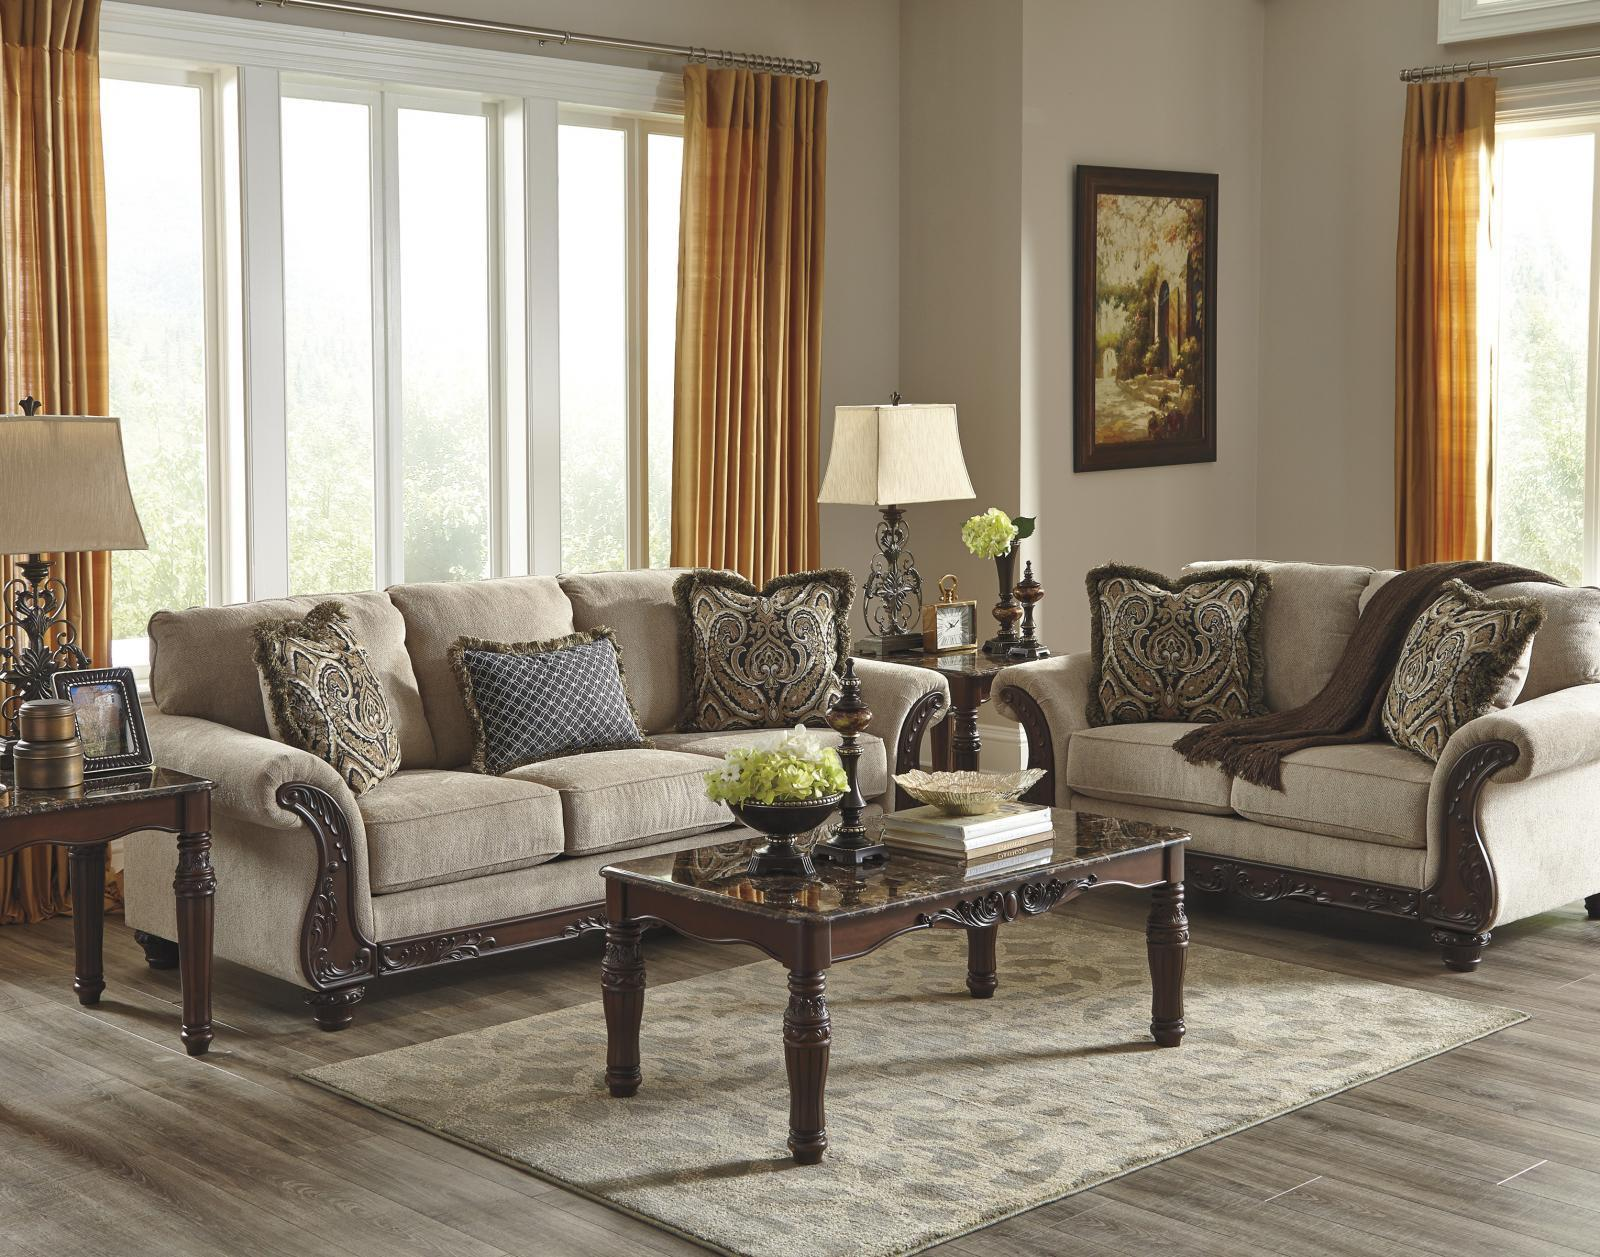 Ashley Laytonsville Living Room Set 2pcs in Pebble Upholstery Fabric Traditional